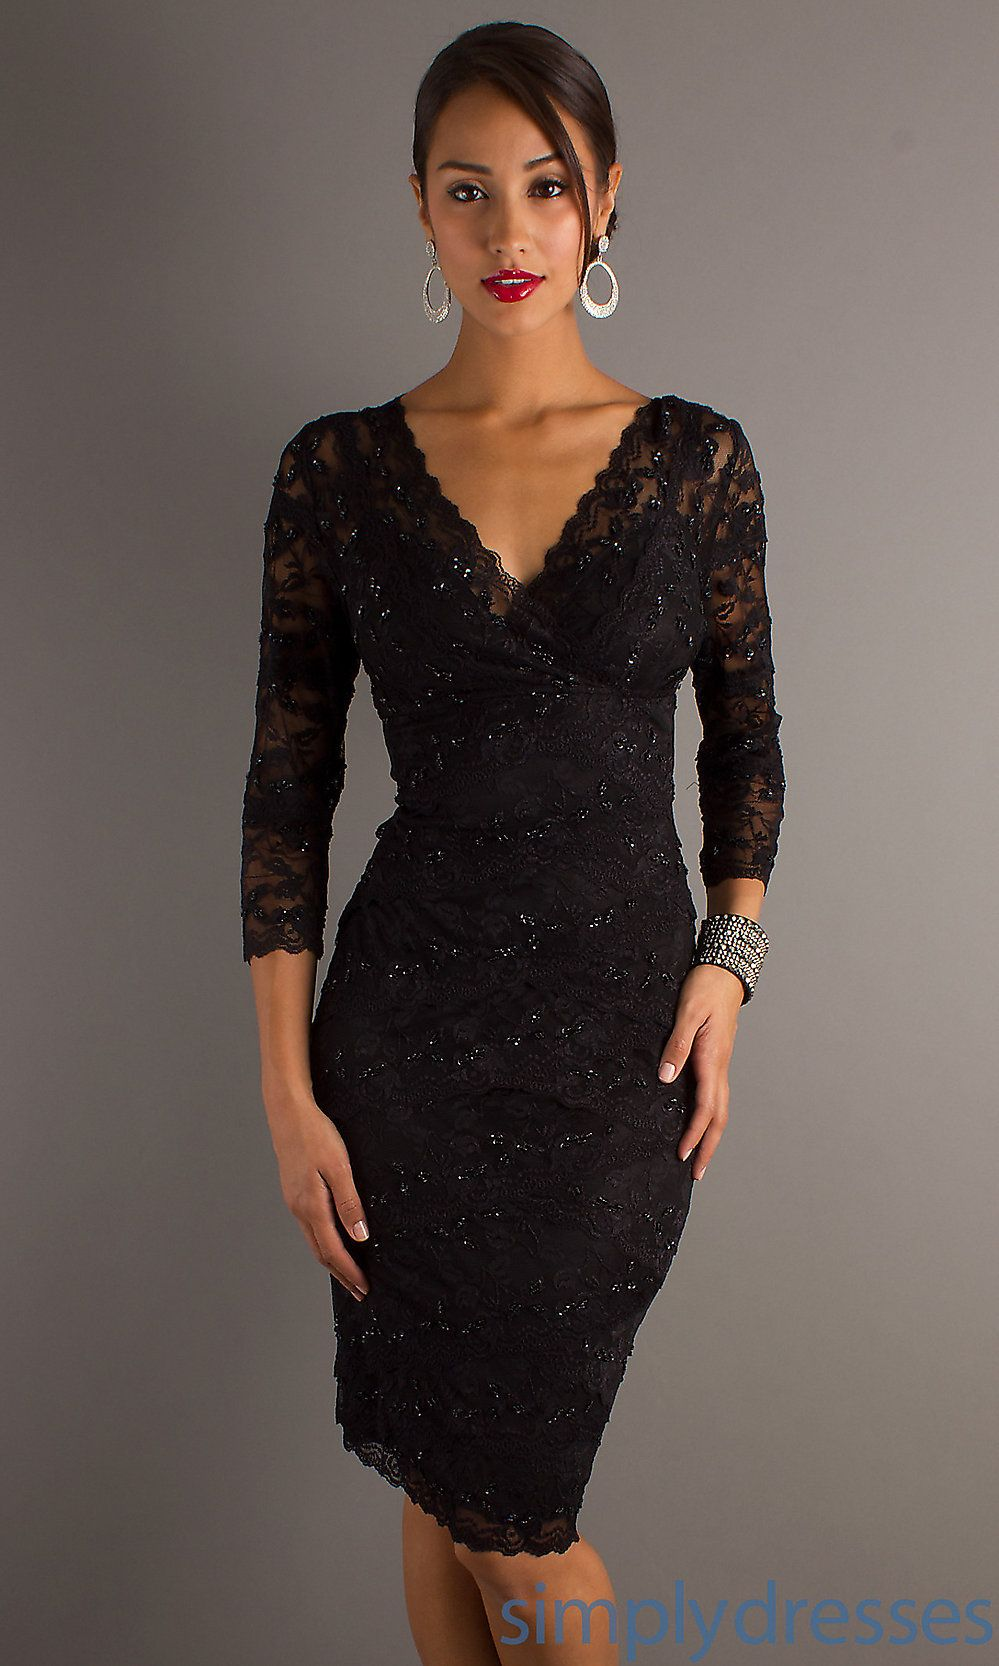 Knee-Length Lace V-Neck Party Dress with Sleeves | Black laces ...